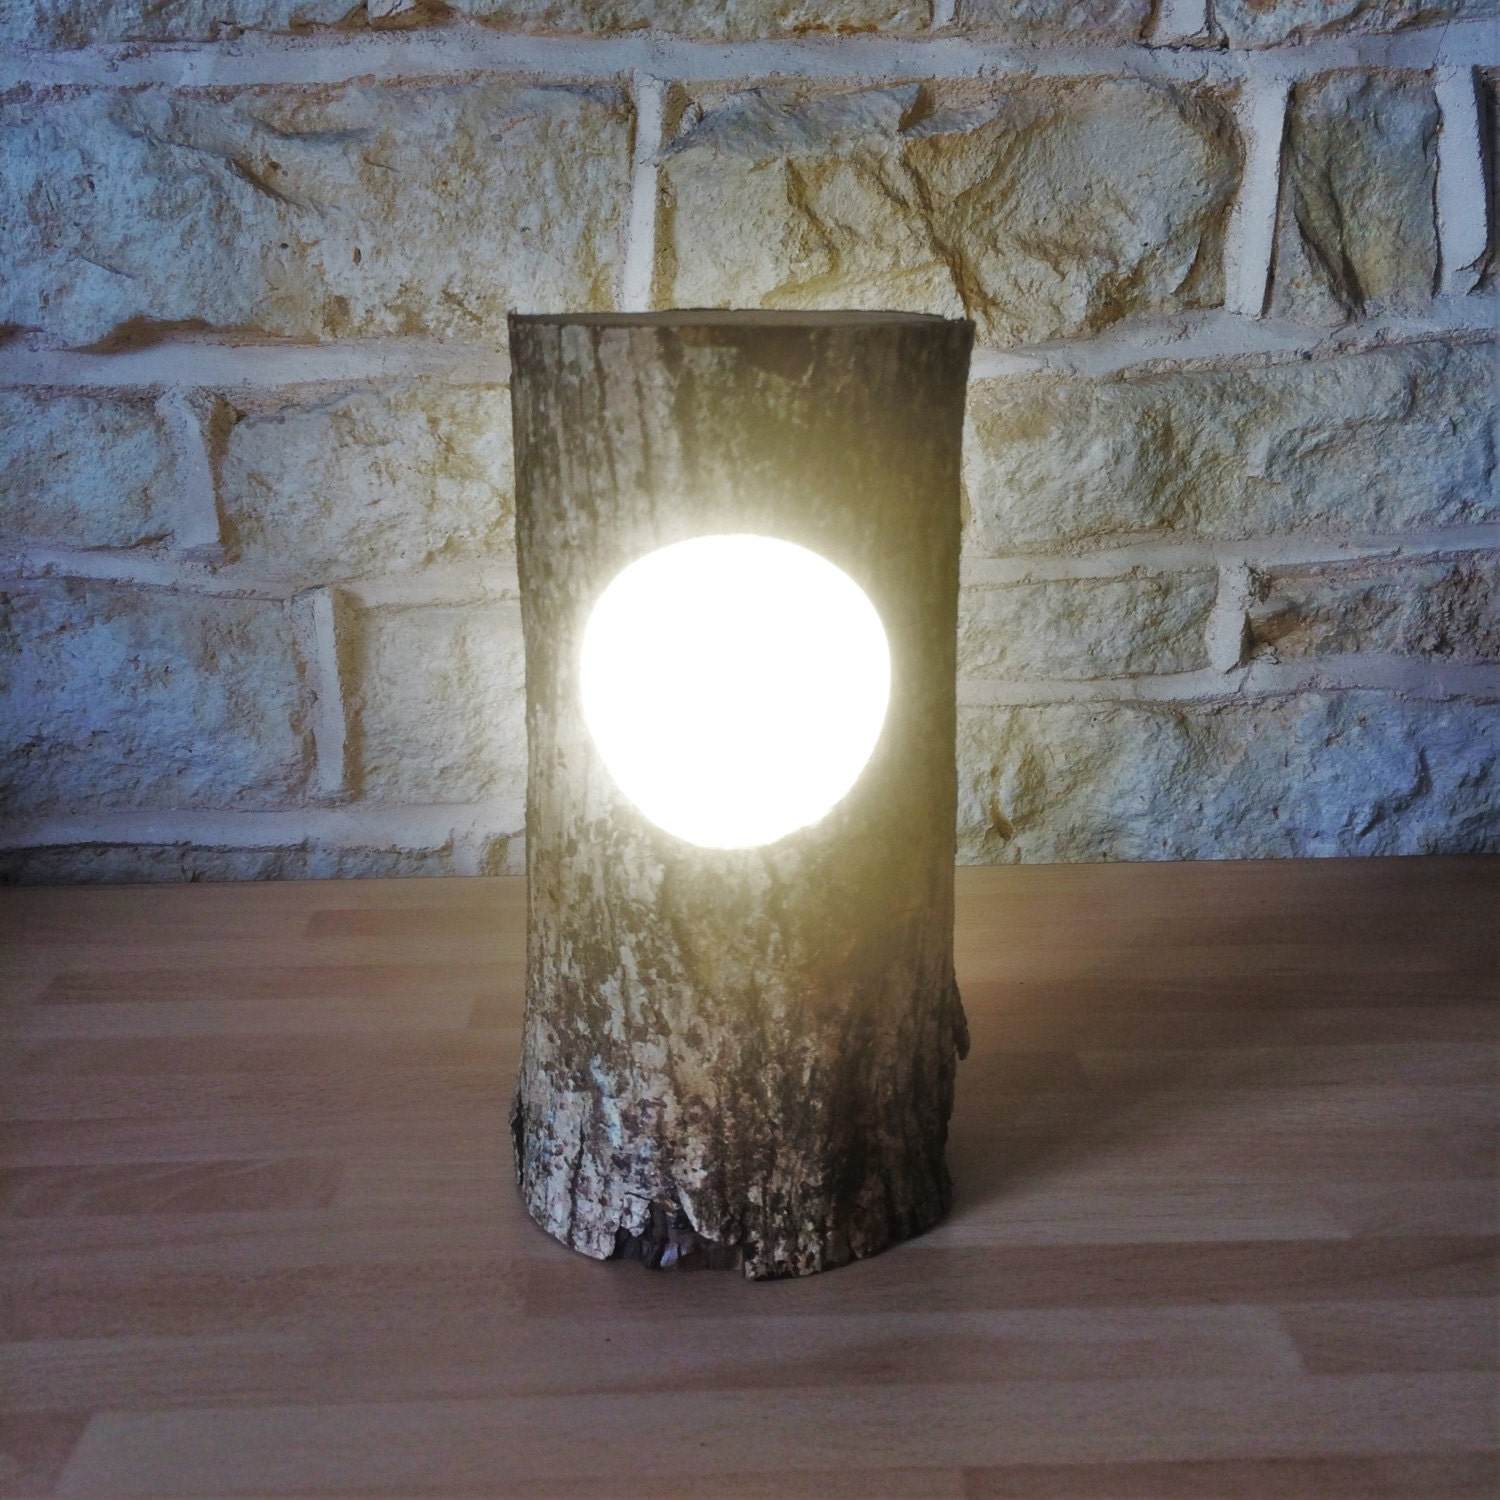 Log Light, Log Lamp, Log Lantern, Rustic Lamp, Rustic Light, Rustic  Lantern, Teacher Gift, Woodland Lamp